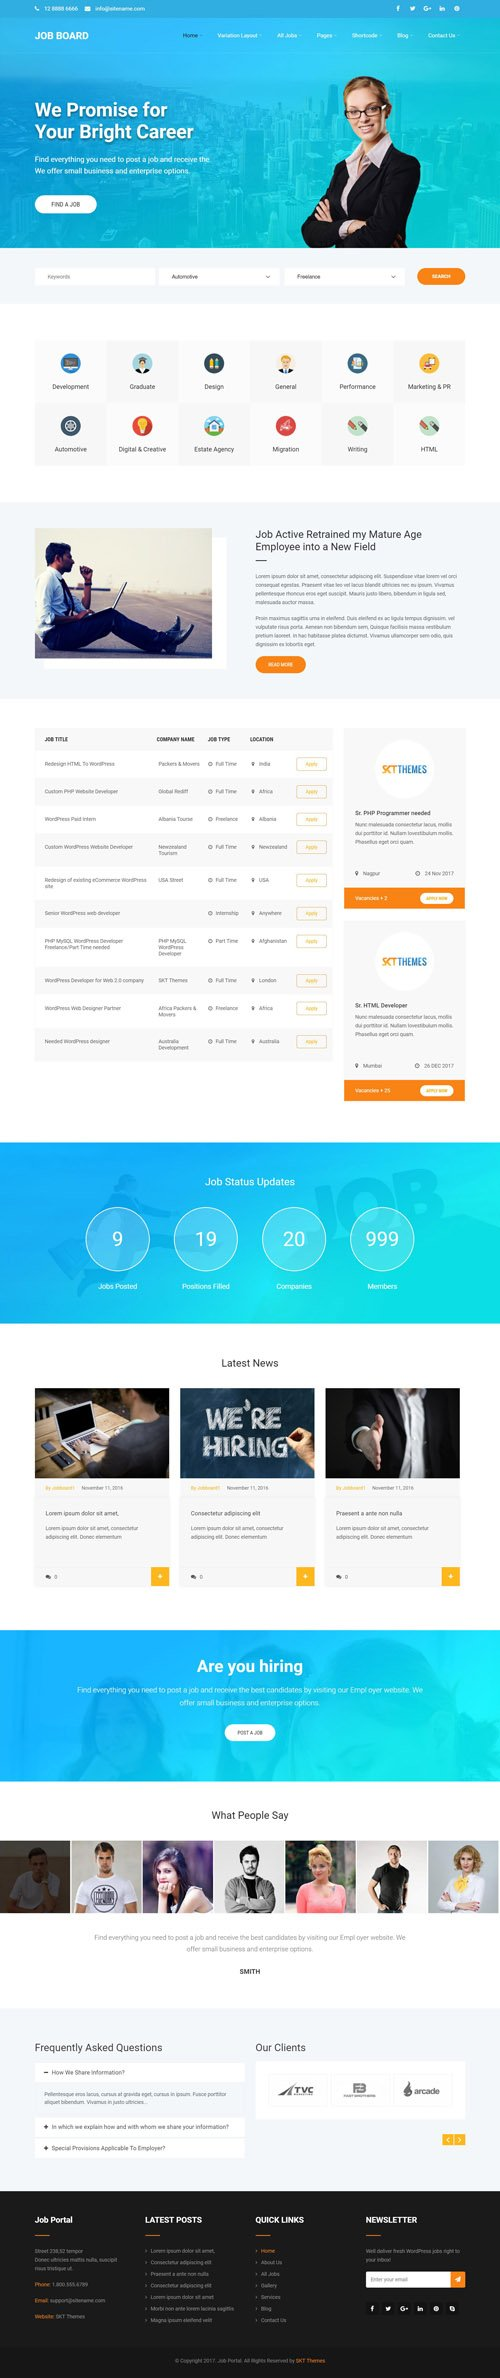 SKT Themes - Job Portal v1.0 - Responsive WordPress Theme